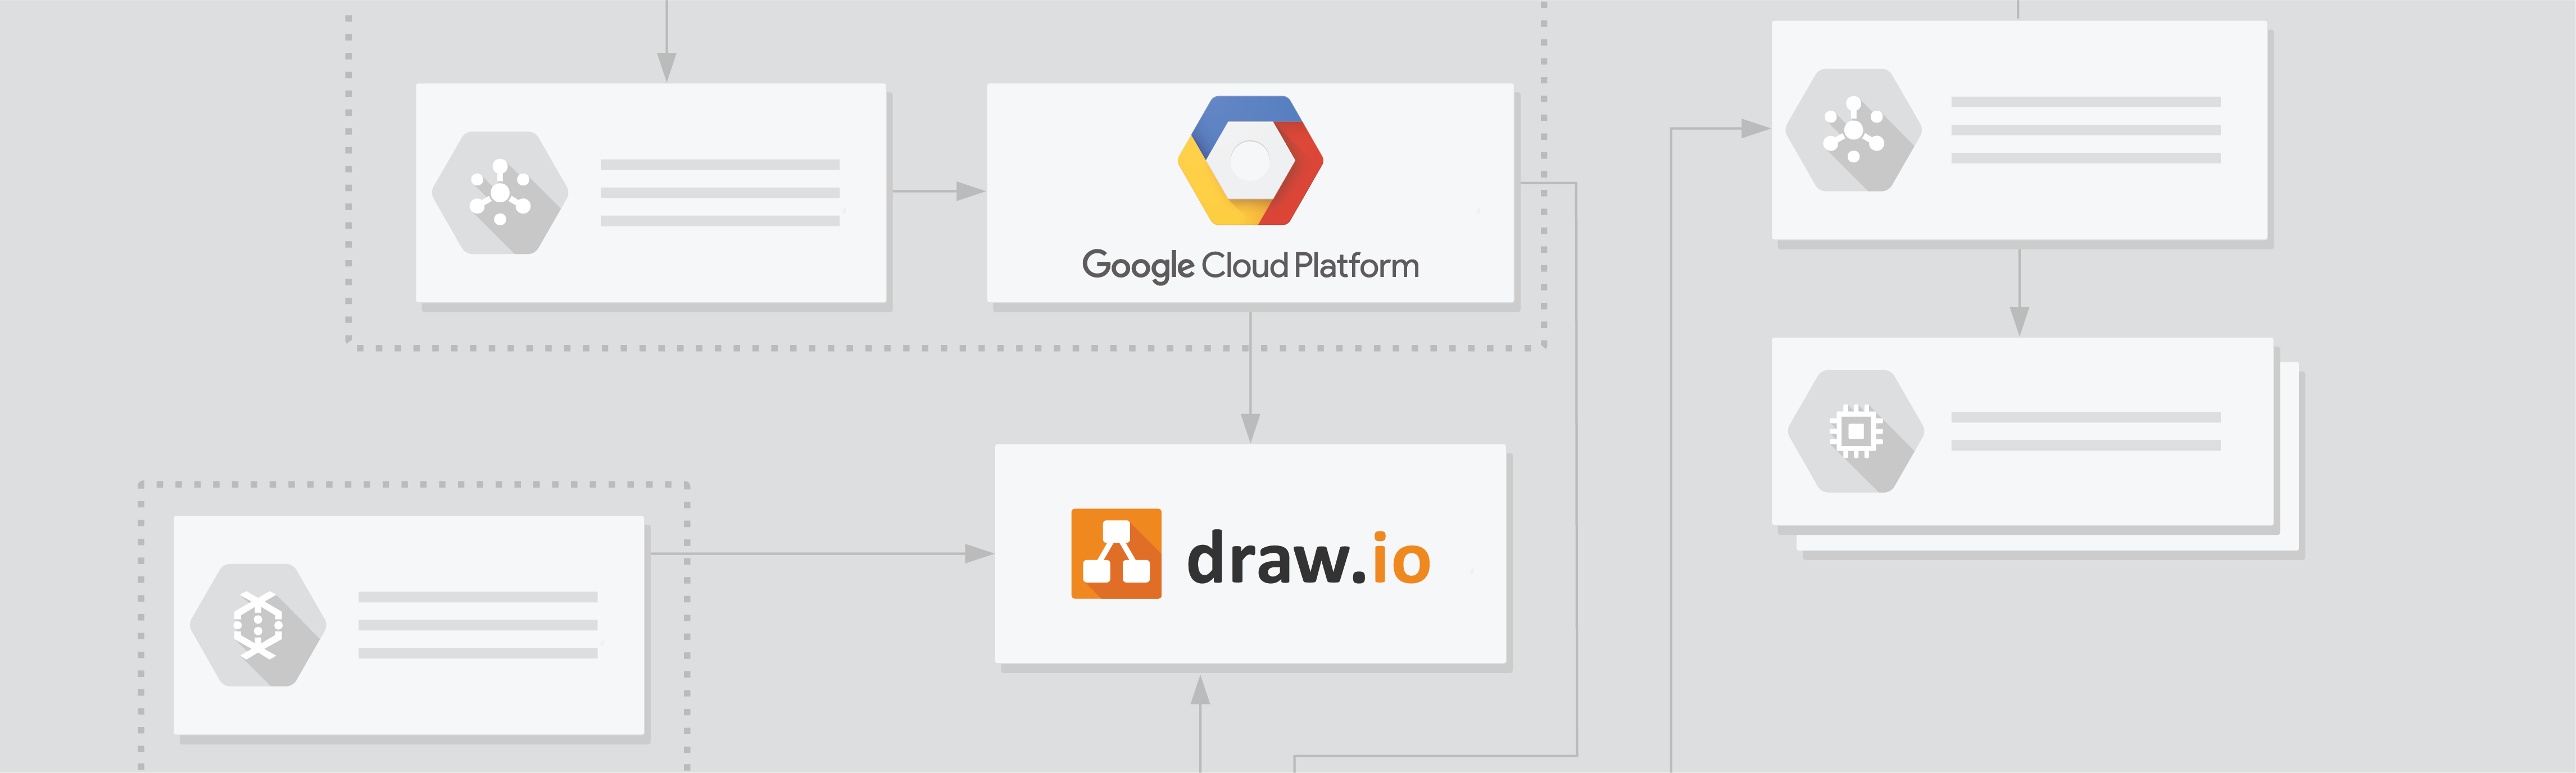 We've re-worked the Google Cloud Platform icon set based on the feedback you've given us.